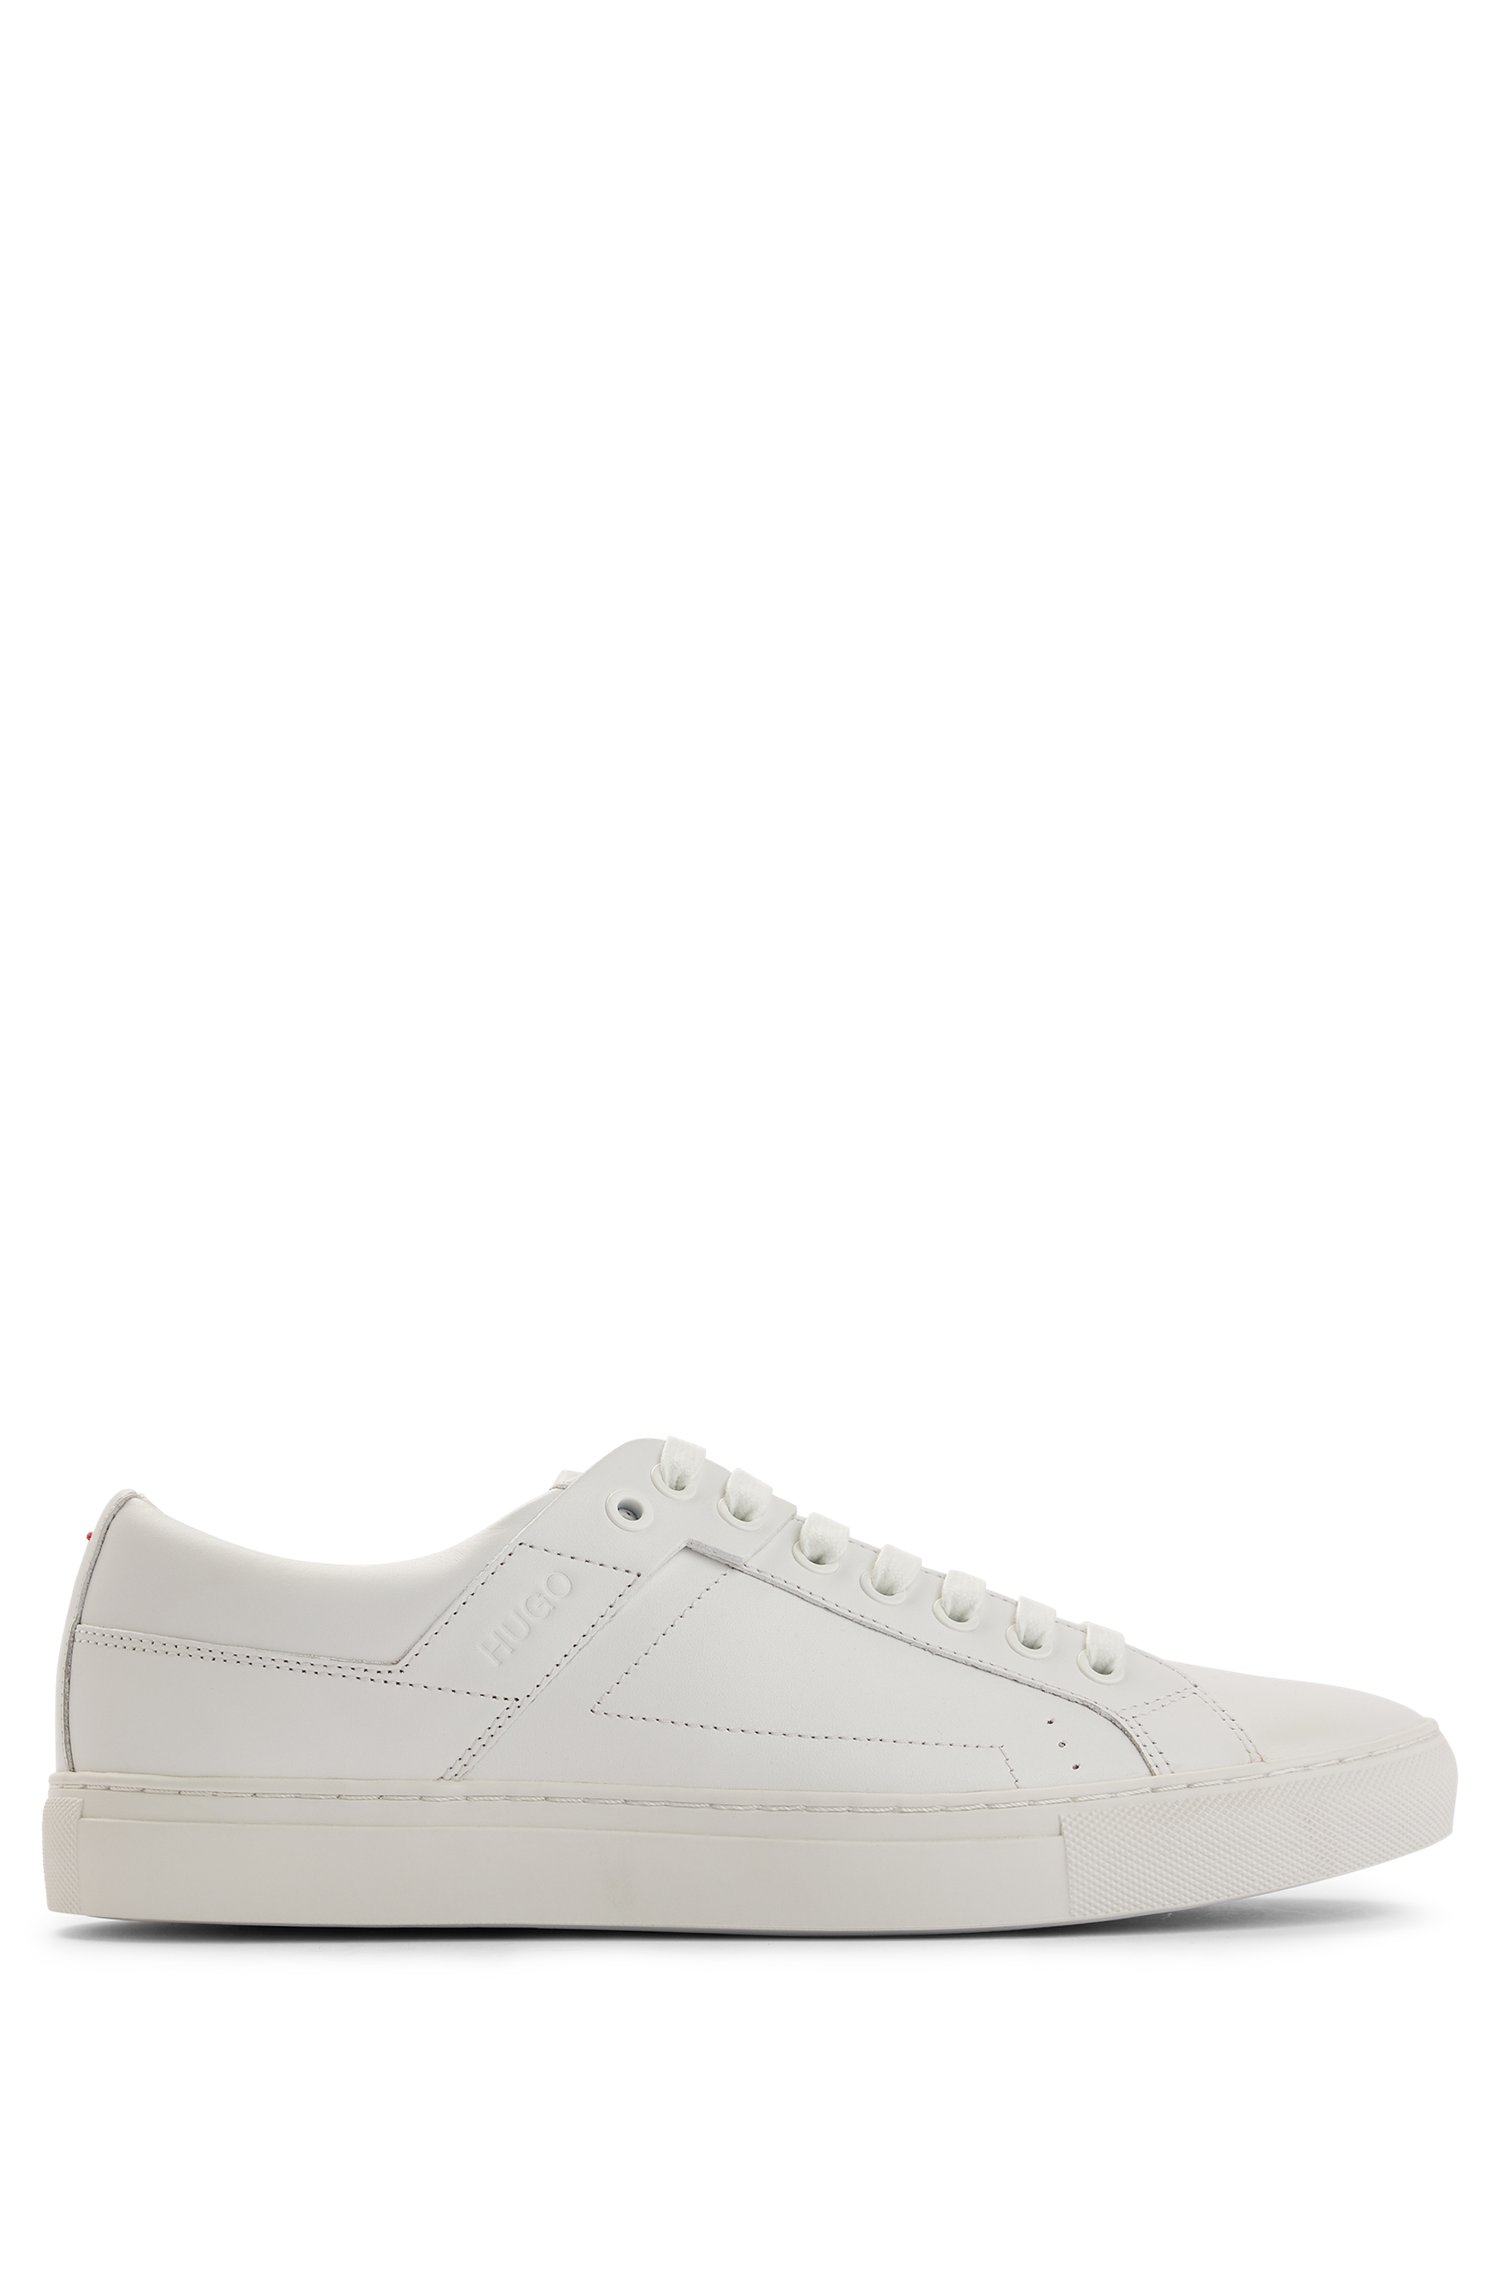 Tennis-inspired trainers in nappa leather with rubber sole, White